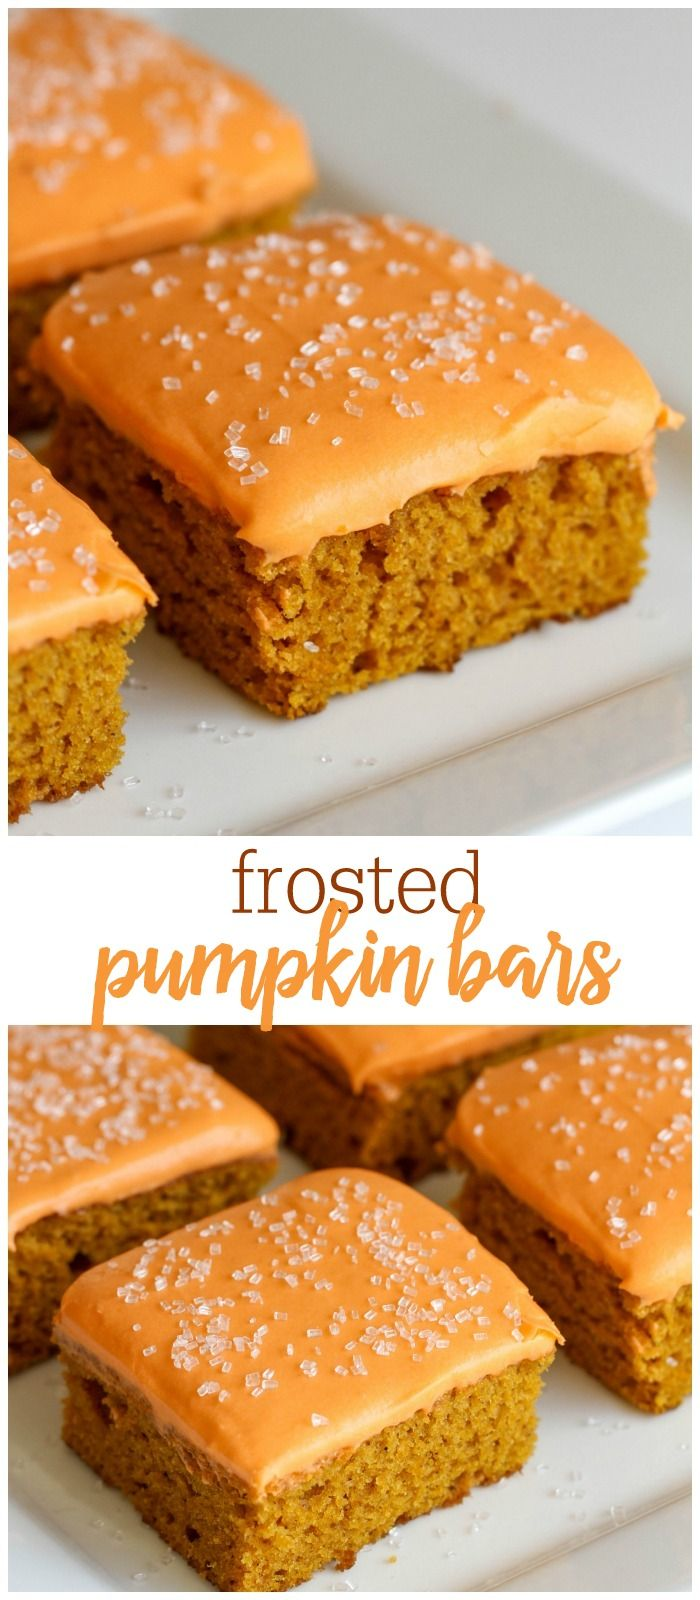 Soft and flavorful Pumpkin Bars with a homemade Cream Cheese frosting.